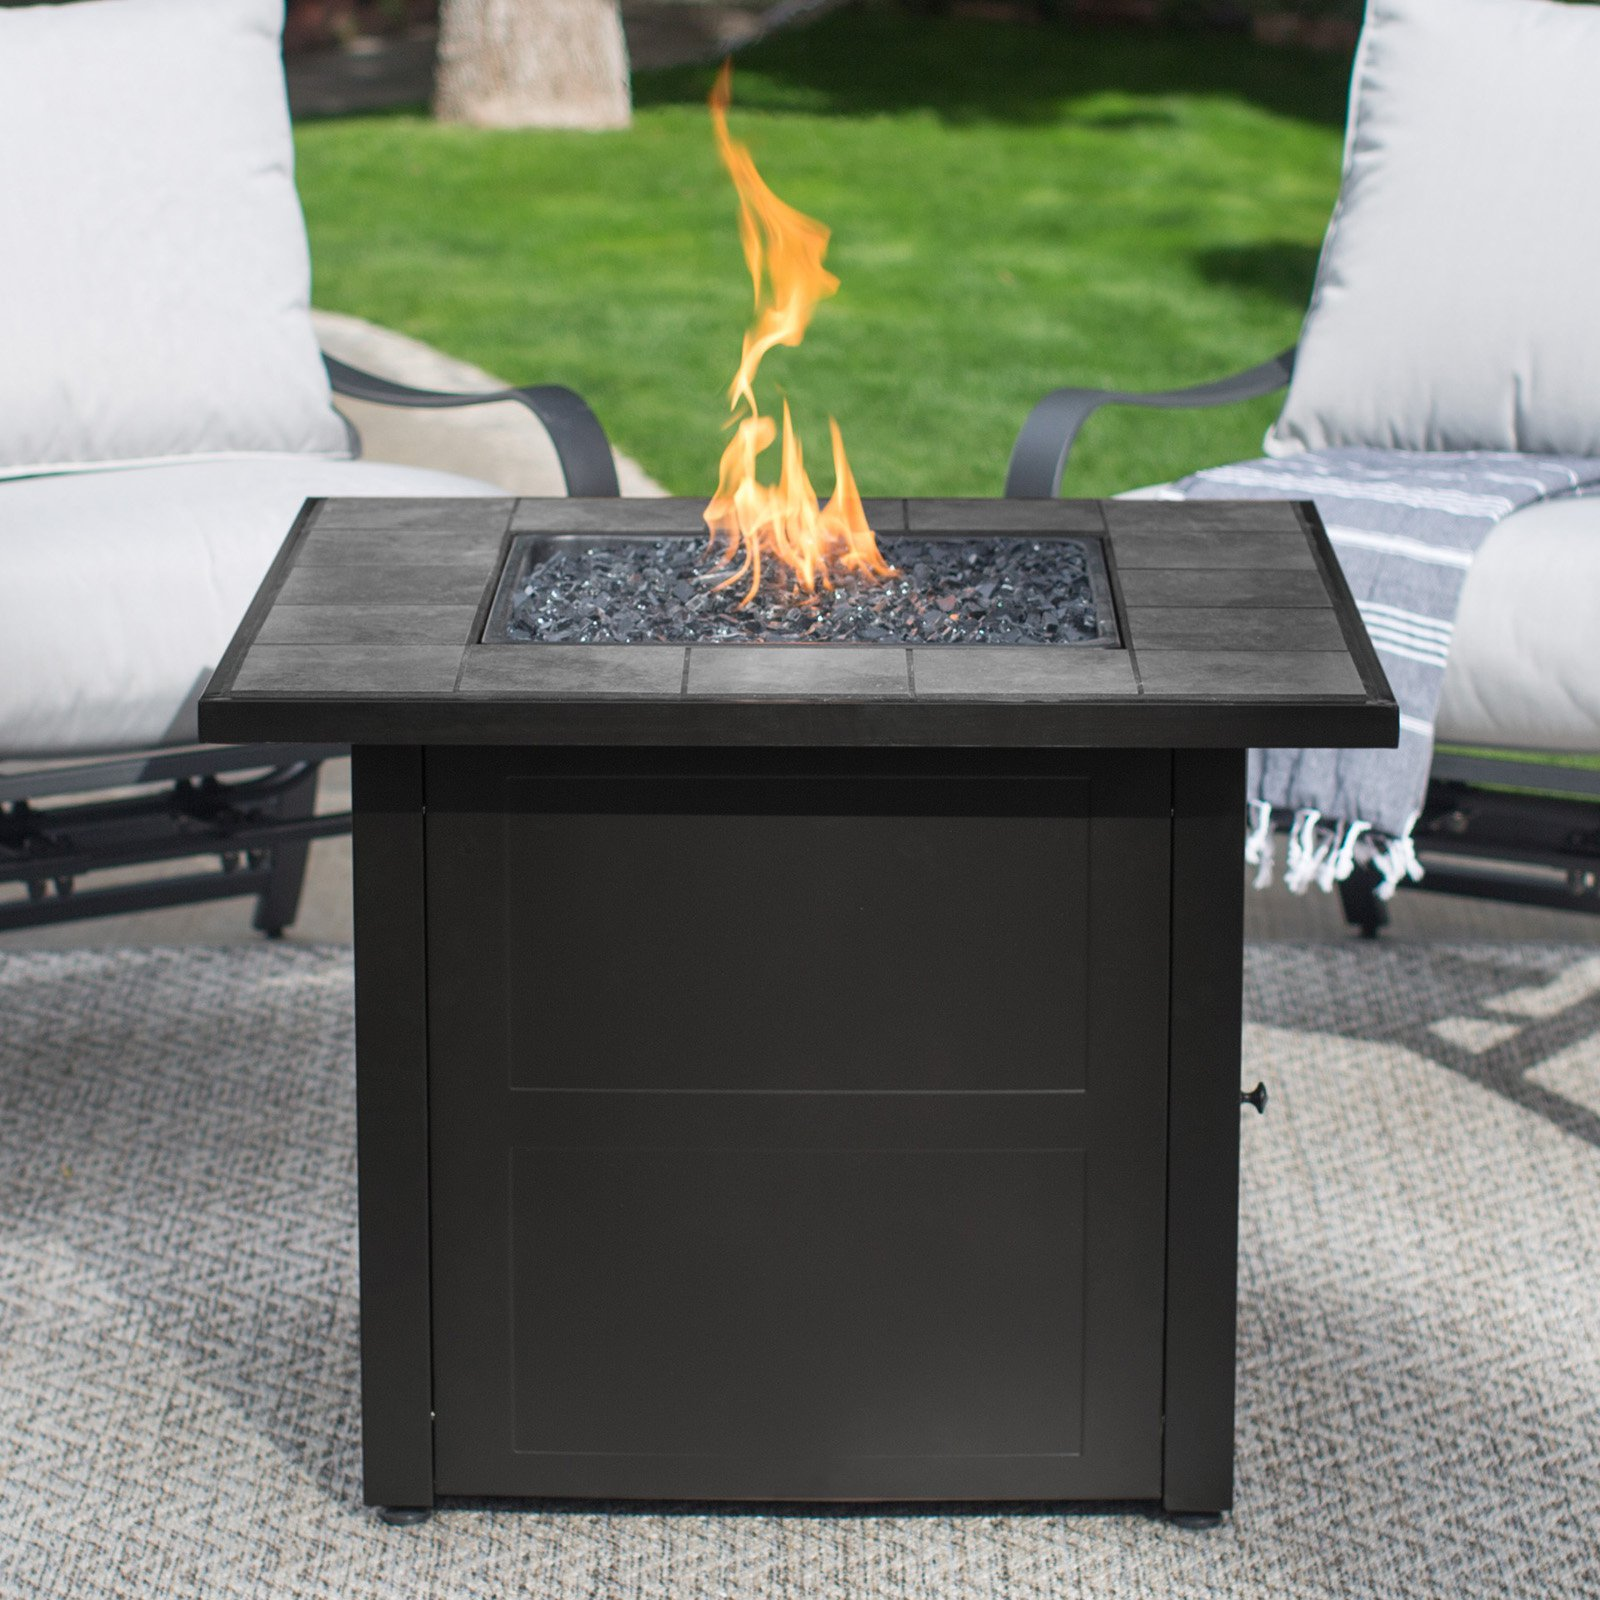 Delicieux UniFlame LP Gas Ceramic Tile Fire Pit Table